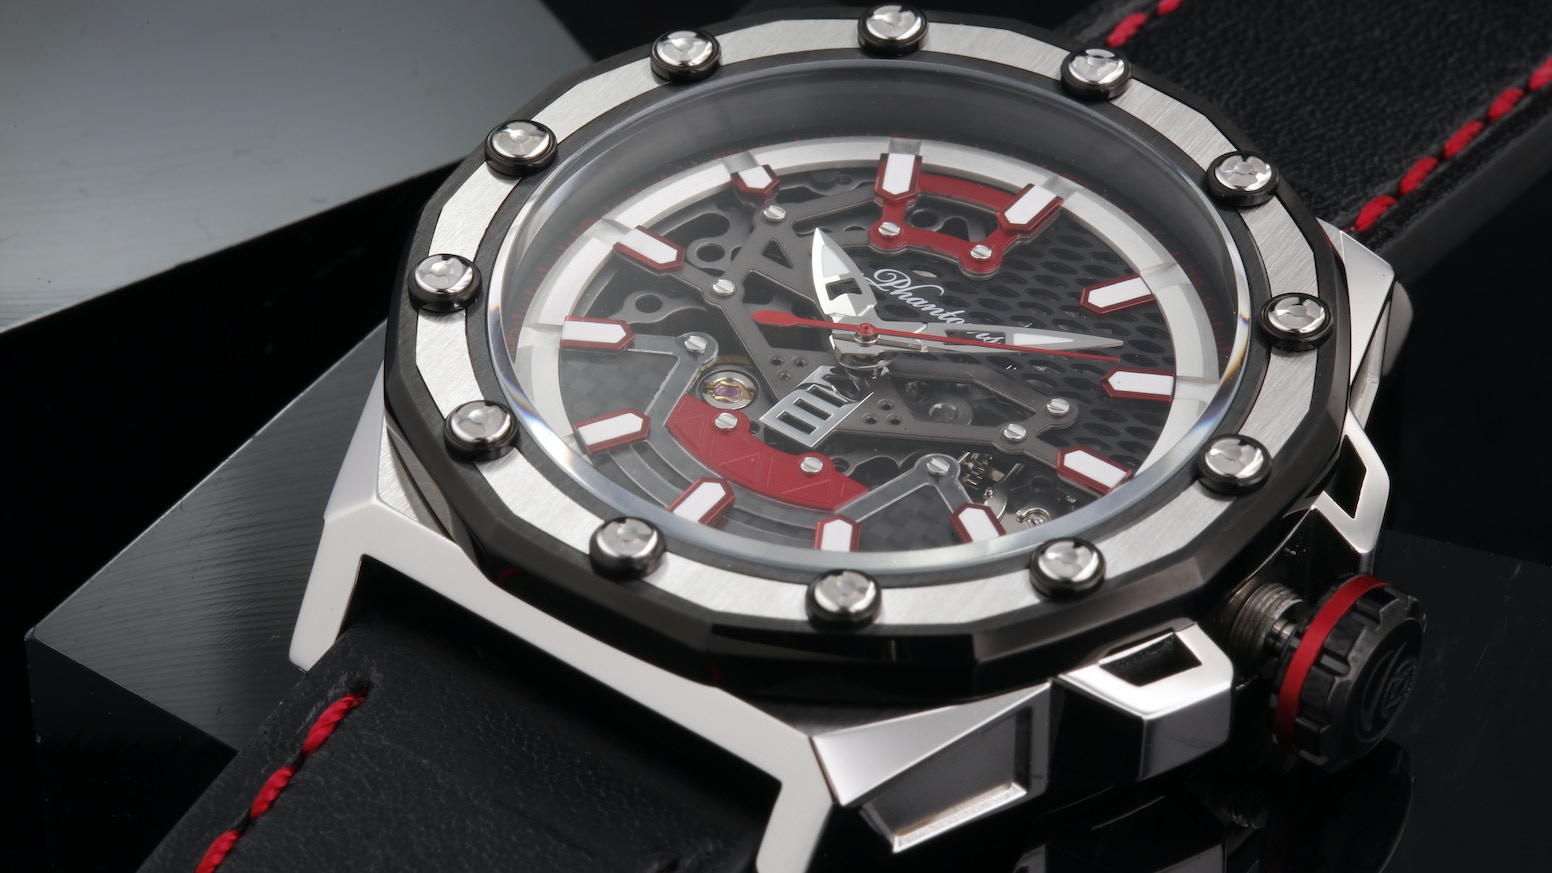 One Of The Most Detailed Mechanical Skeleton Automatic Watch is the top crowdfunding project launched today. One Of The Most Detailed Mechanical Skeleton Automatic Watch raised over $157660 from 38 backers. Other top projects include CORE 46: FIRST SMART GYM, STRONGER CORE/BODY AGING/BACK PAIN, One Of The Most Detailed Mechanical Skeleton Automatic Watch, MARE INTERNUM: the sci-fi graphic novel...